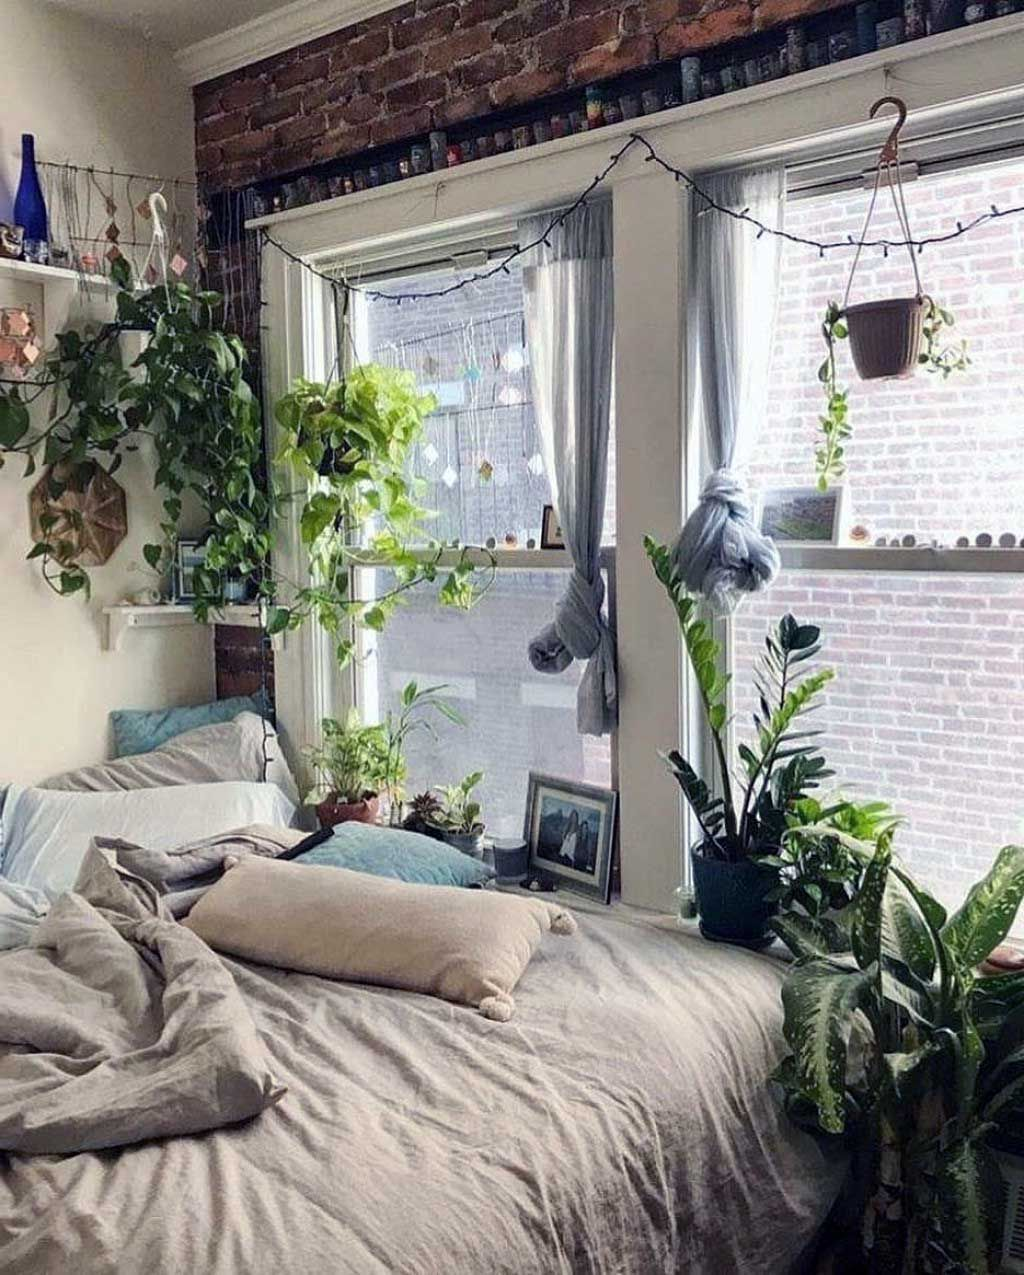 28 awesome aesthetic apartment bedroom decoration ideas on diy home decor on a budget apartment ideas id=44335